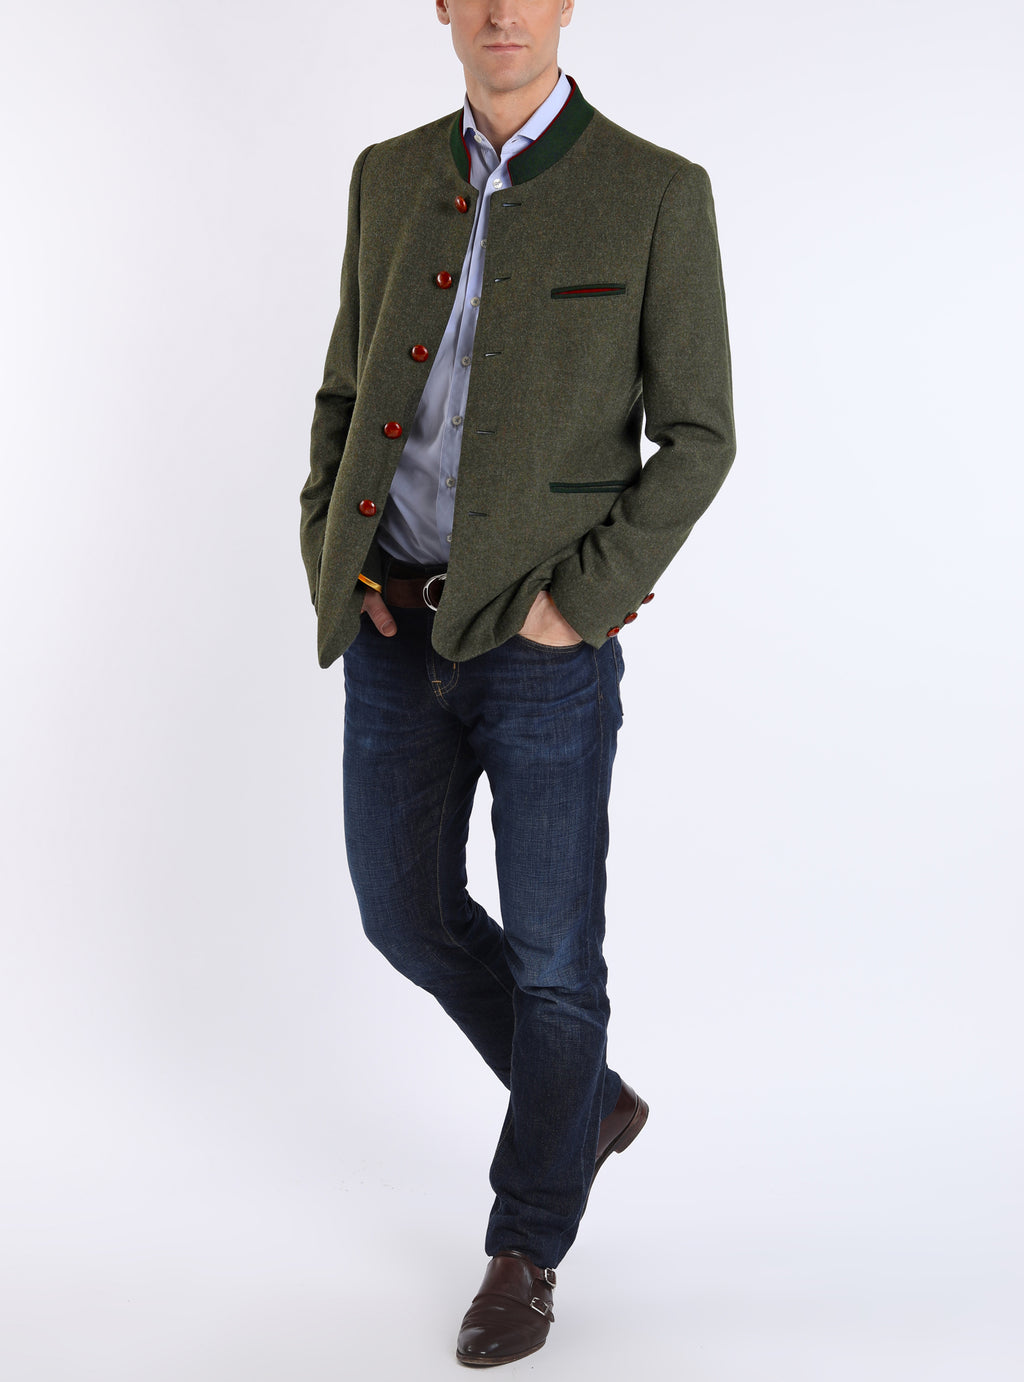 Jacket from Tyrolean loden in sage green